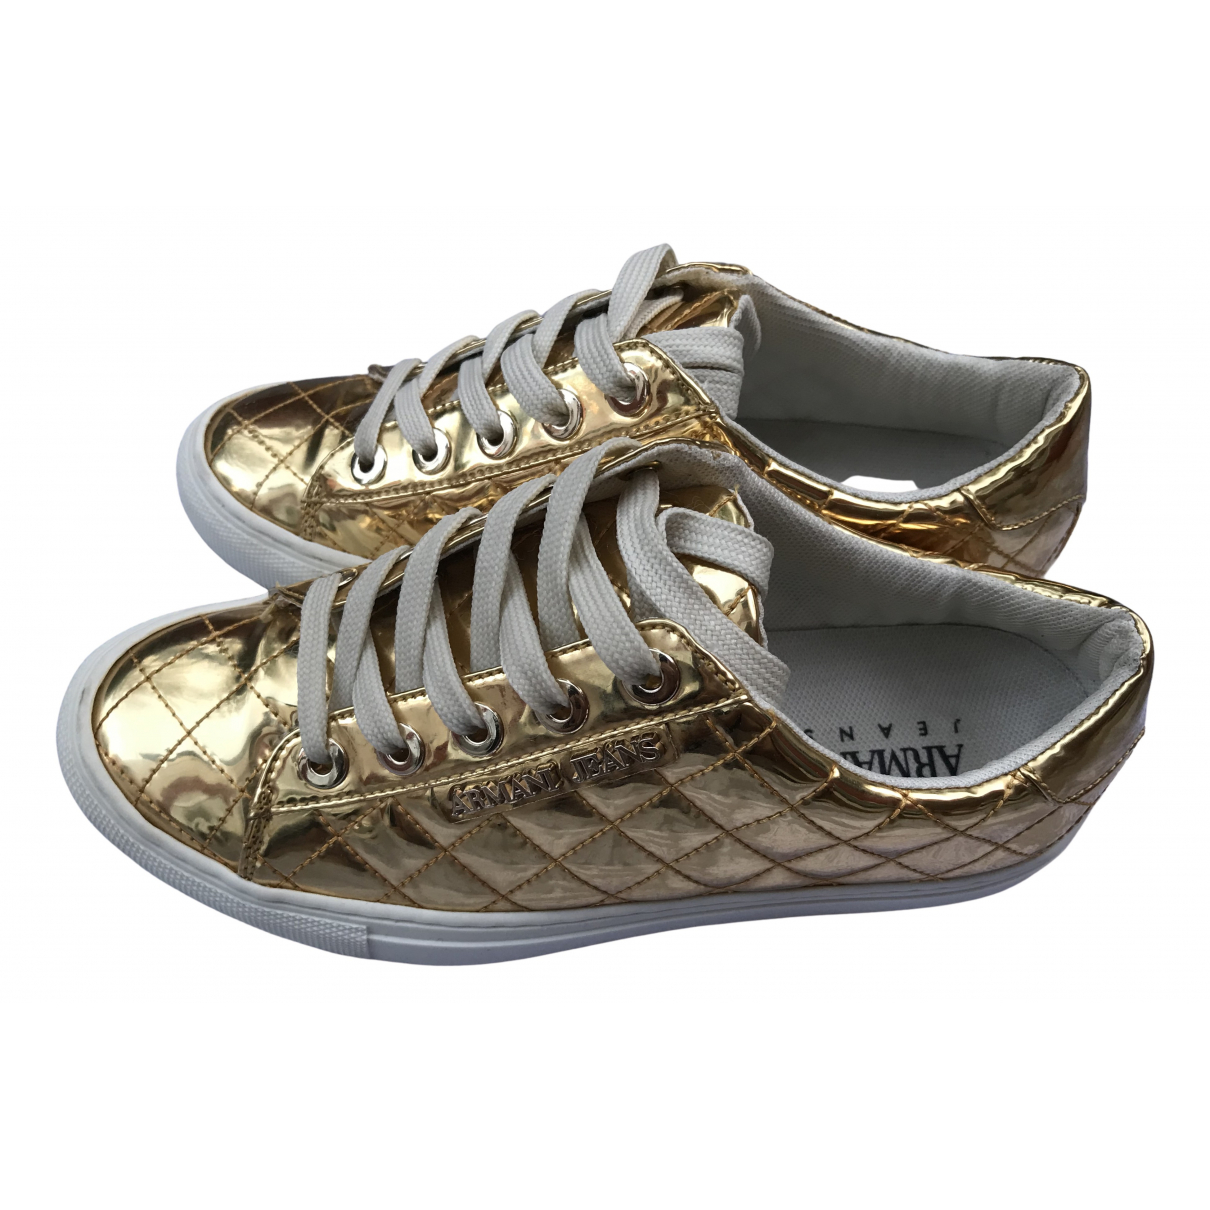 Emporio Armani \N Sneakers in  Gold Lackleder